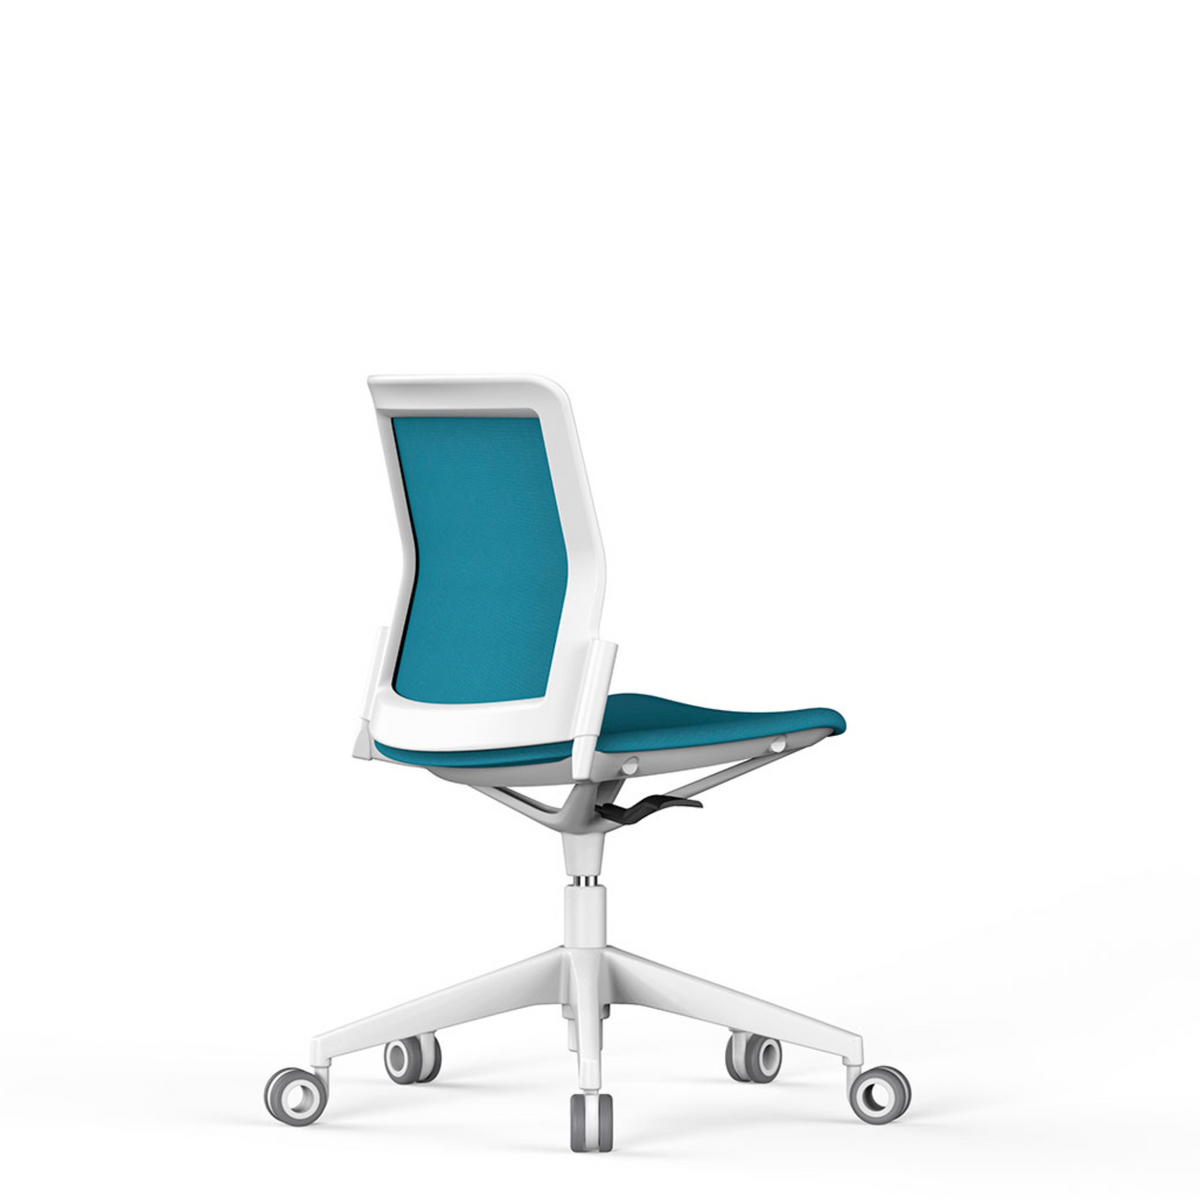 Actiu Office Urban Plus 50 Turquoise Chair